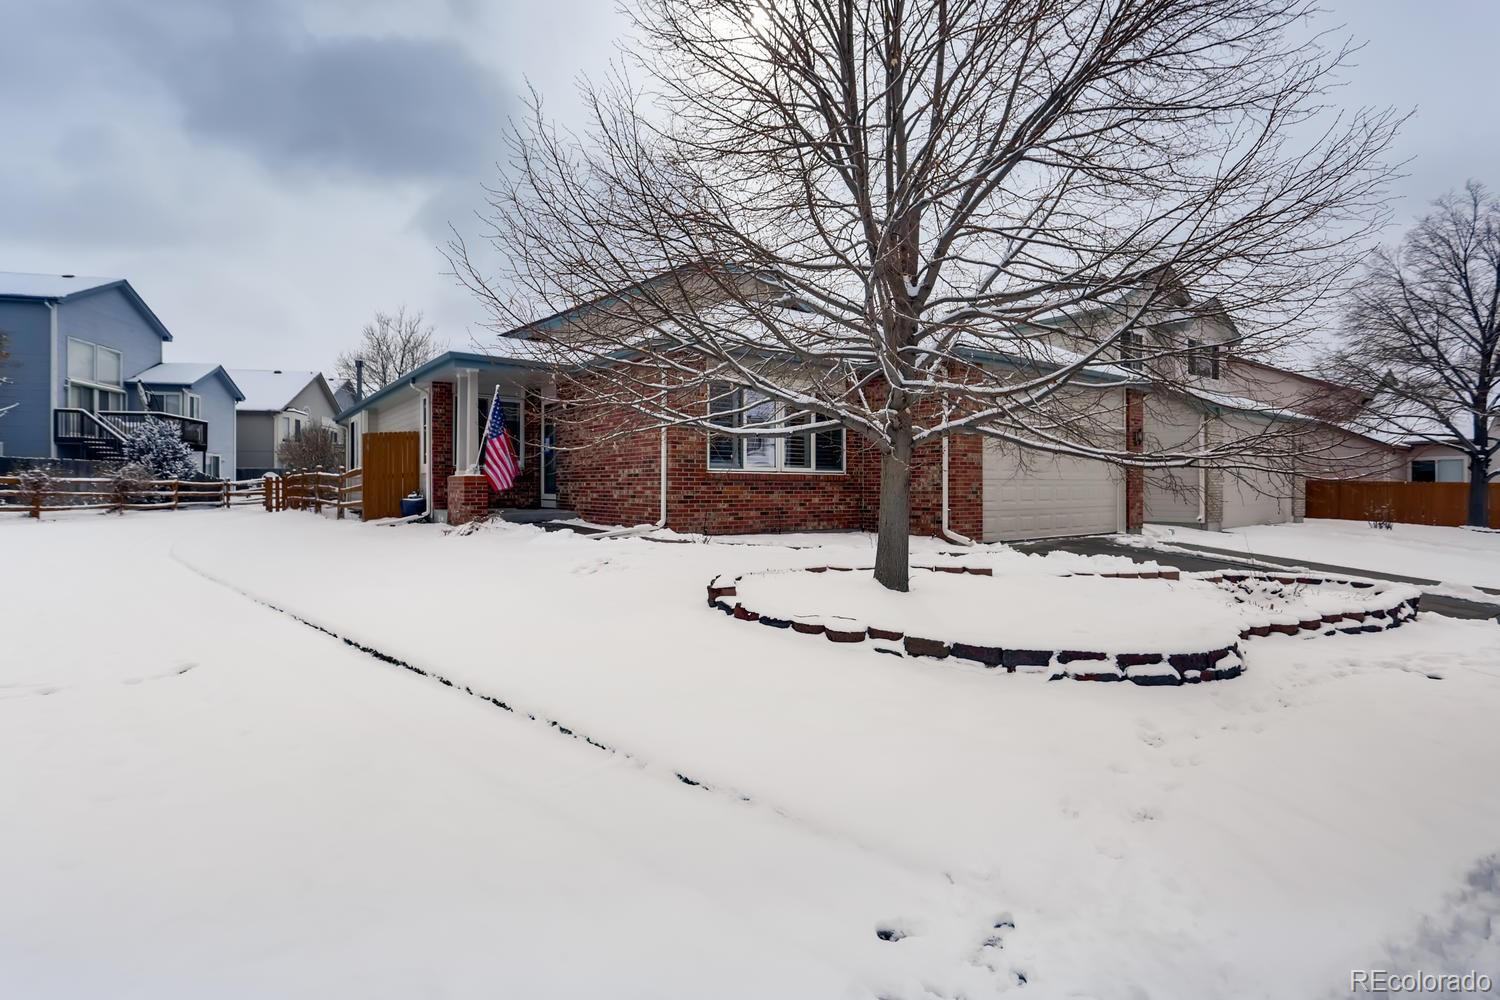 MLS# 3407296 - 4106 S Granby Circle, Aurora, CO 80014